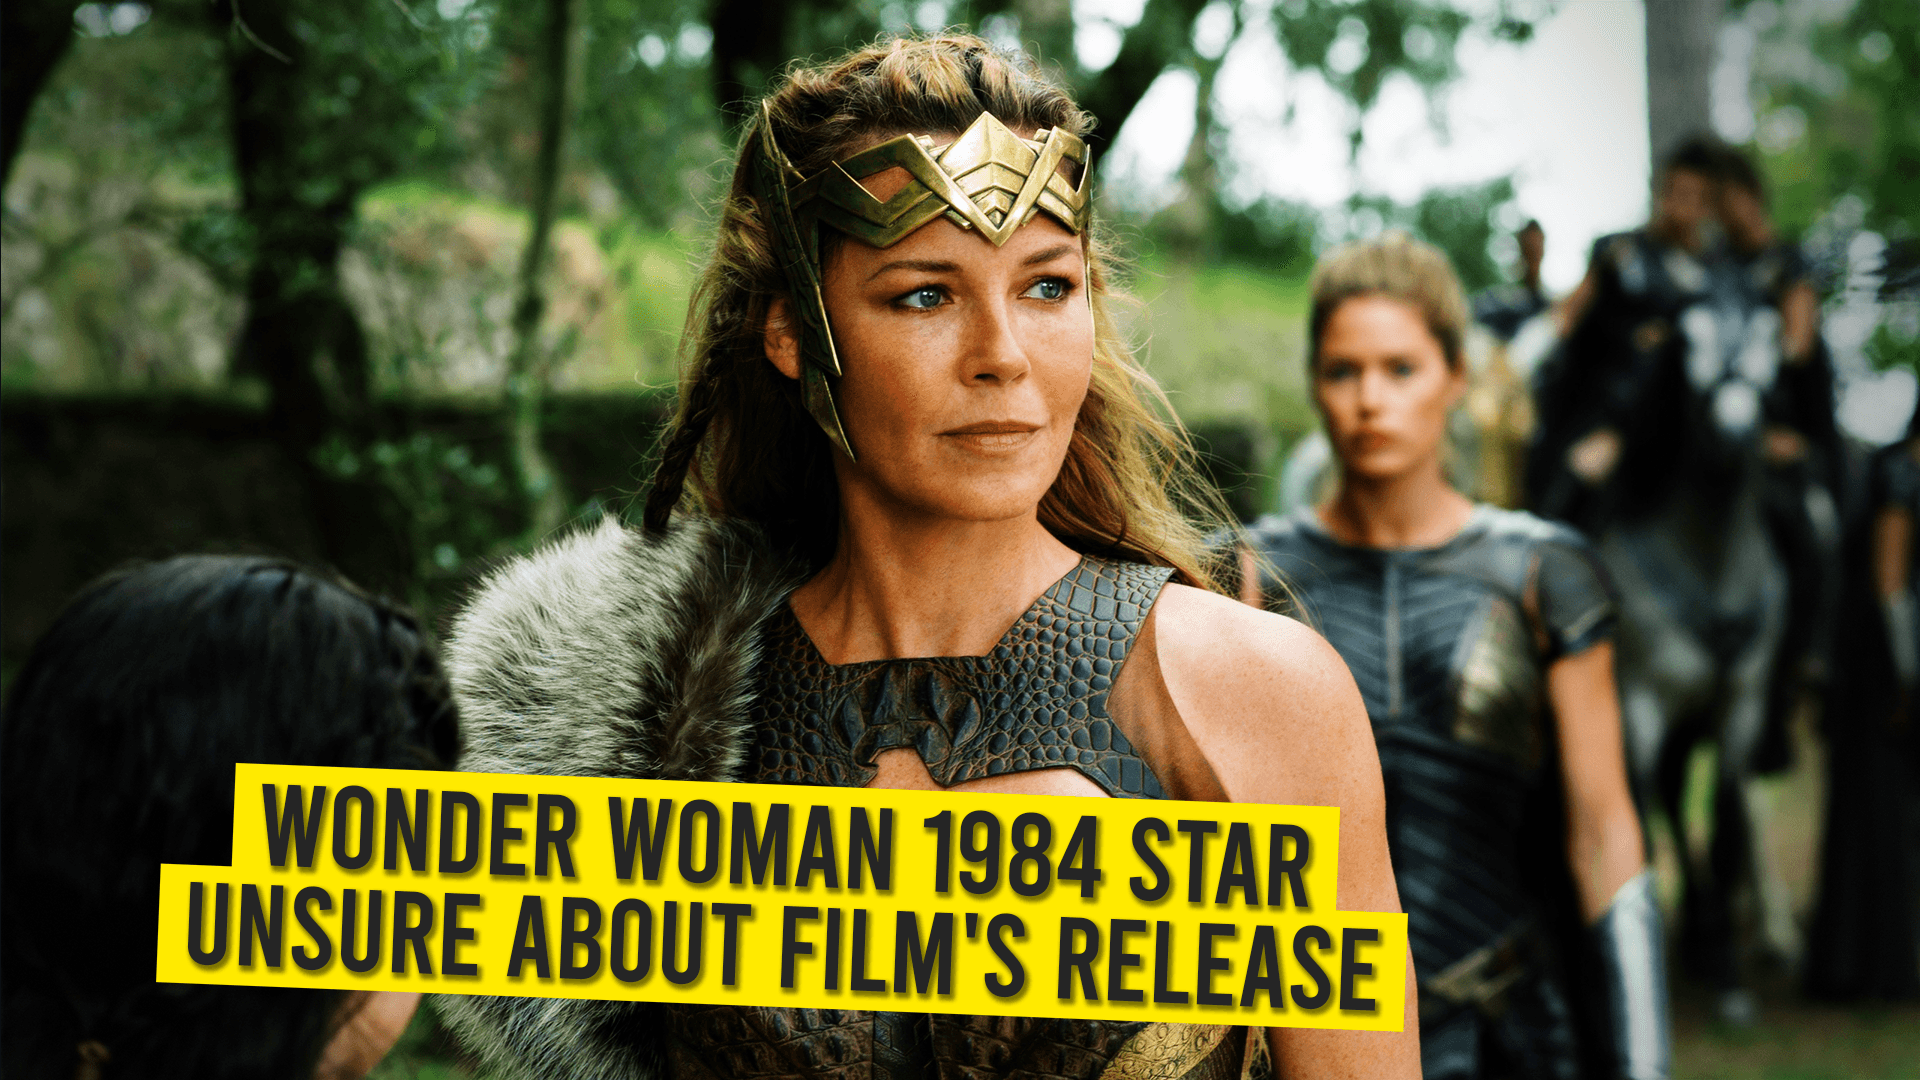 Actor Connie Nielson Admitted That She's Unsure Whether Wonder Woman 1984 Will Release In August